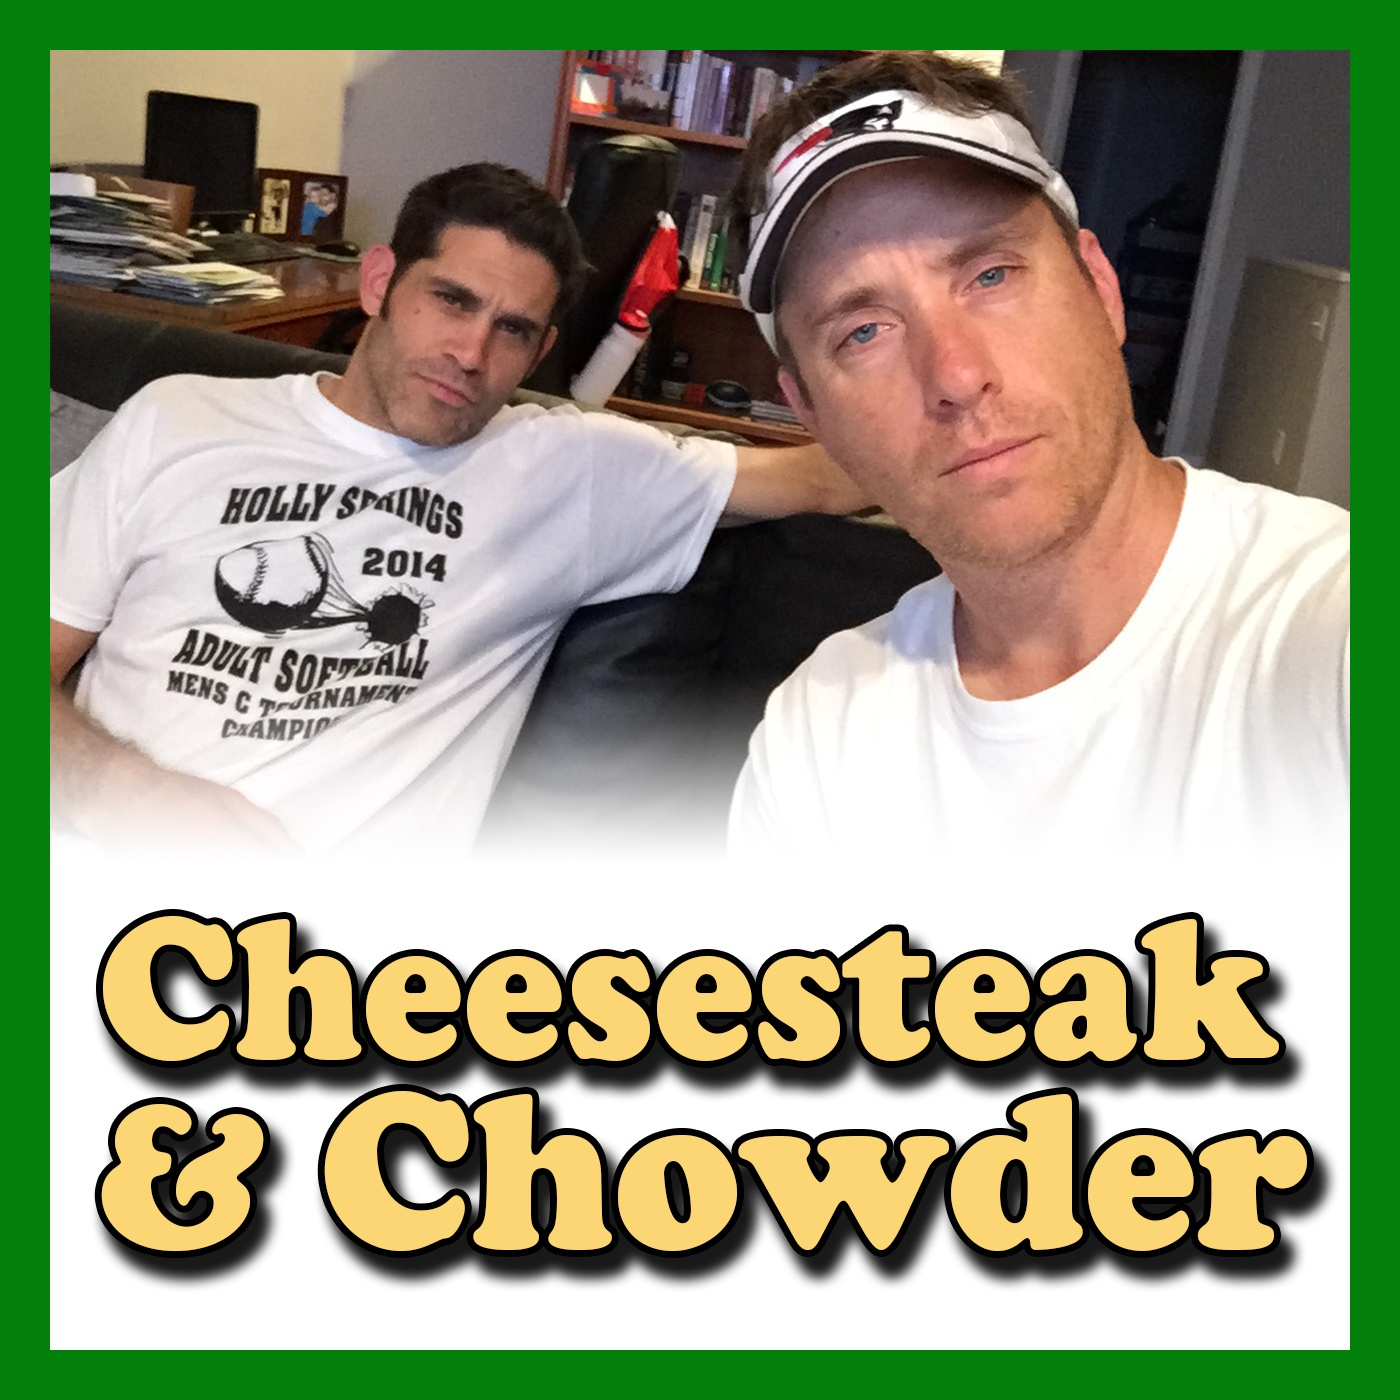 Cheesesteak & Chowder